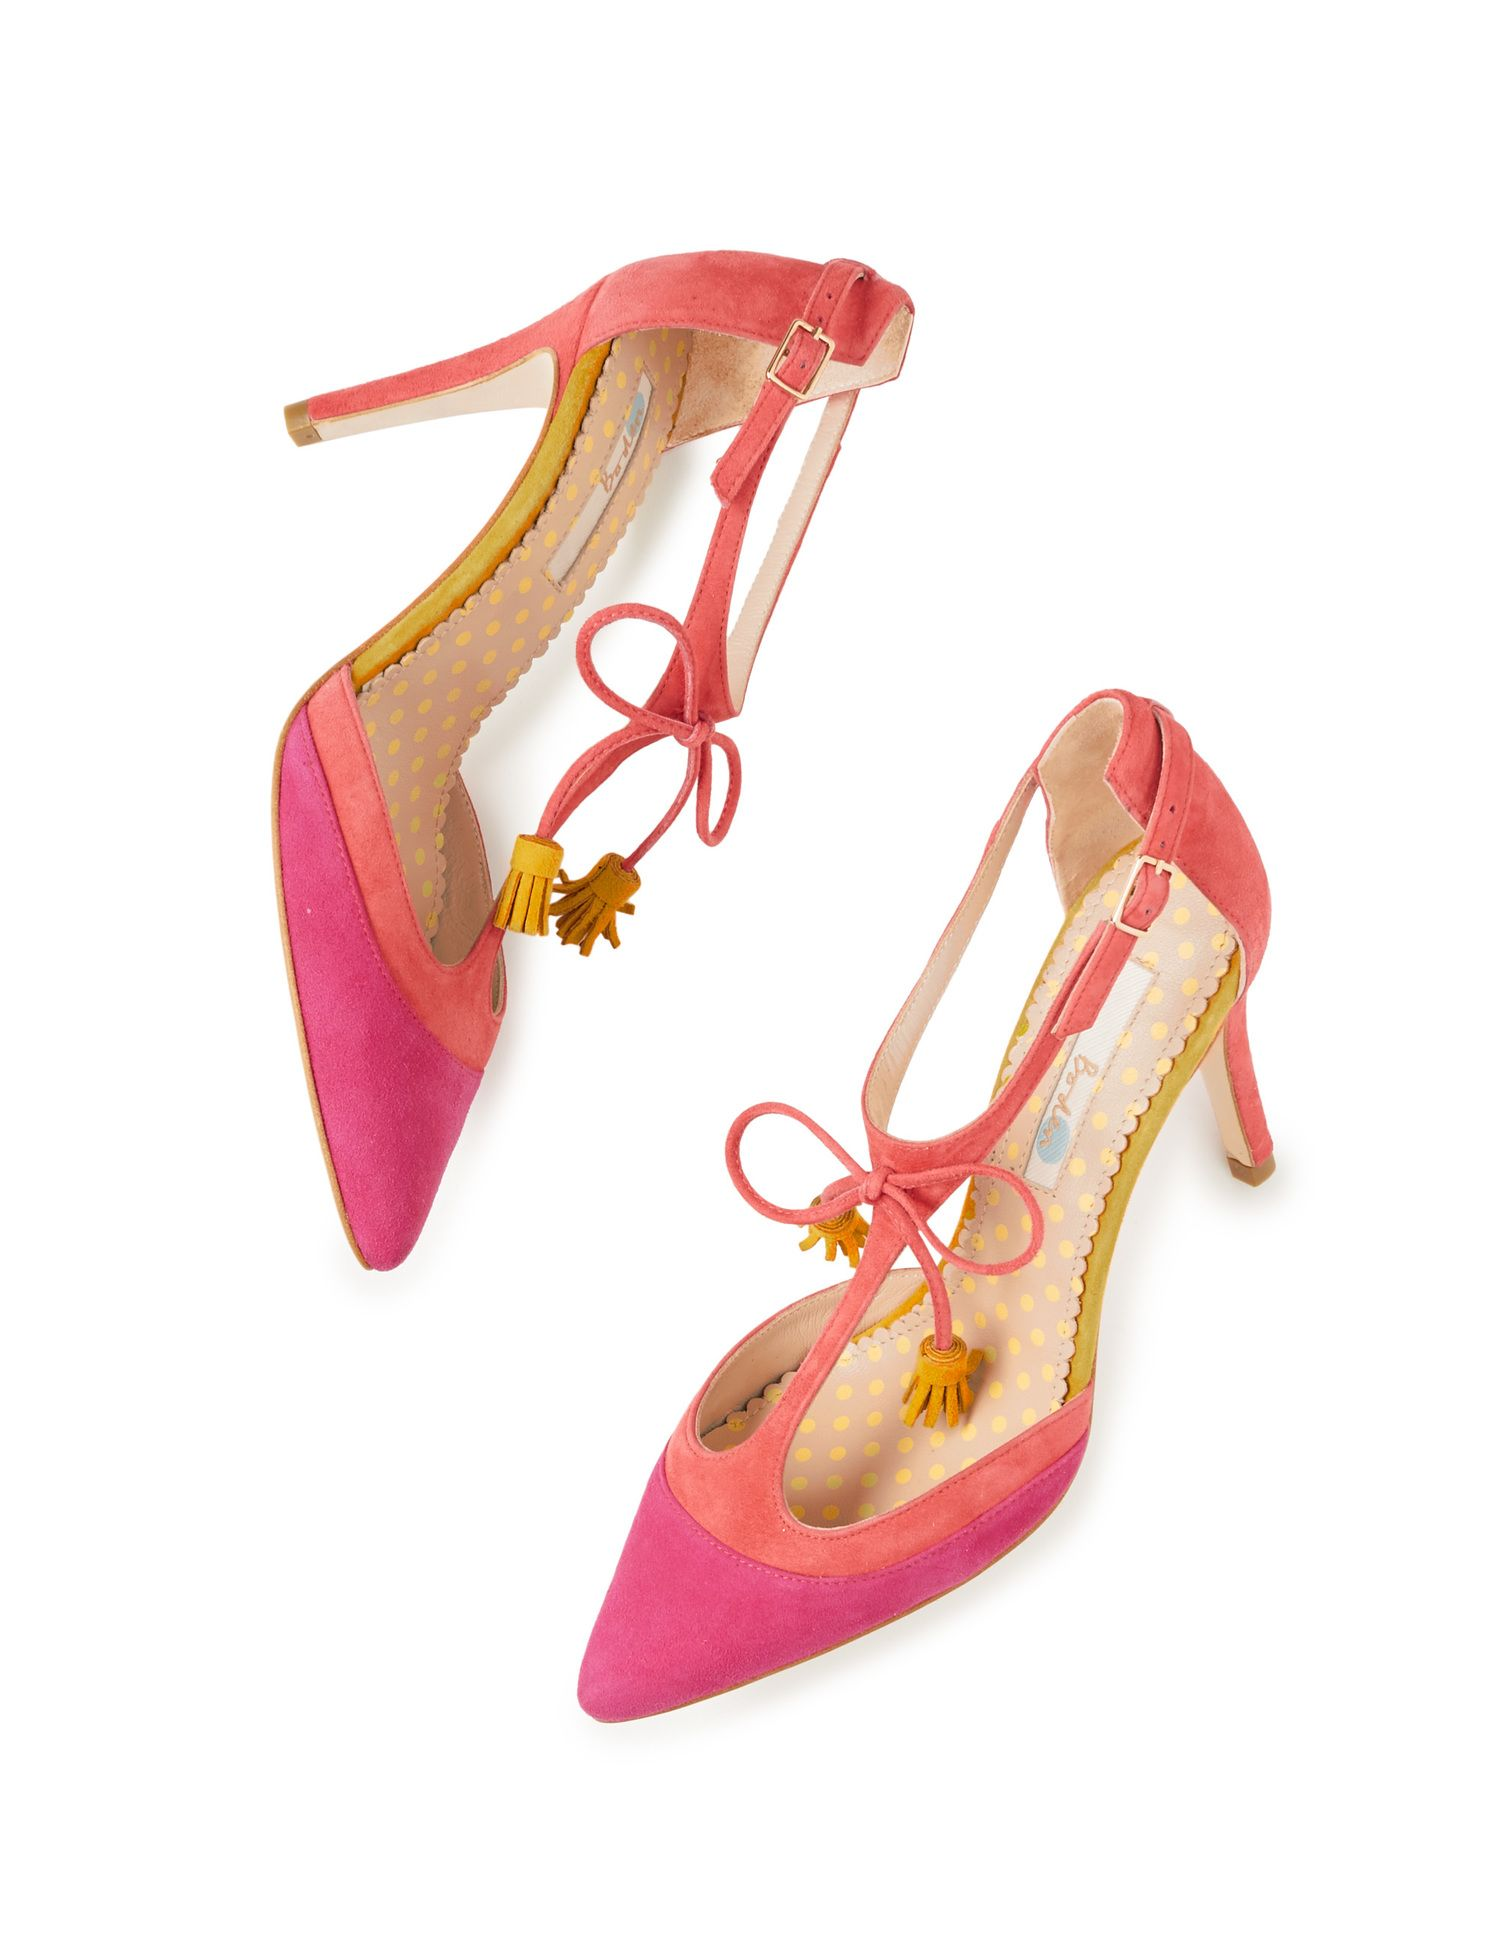 942cbb71164 A shoe-in. (now 20% off too)  Boden  SS15